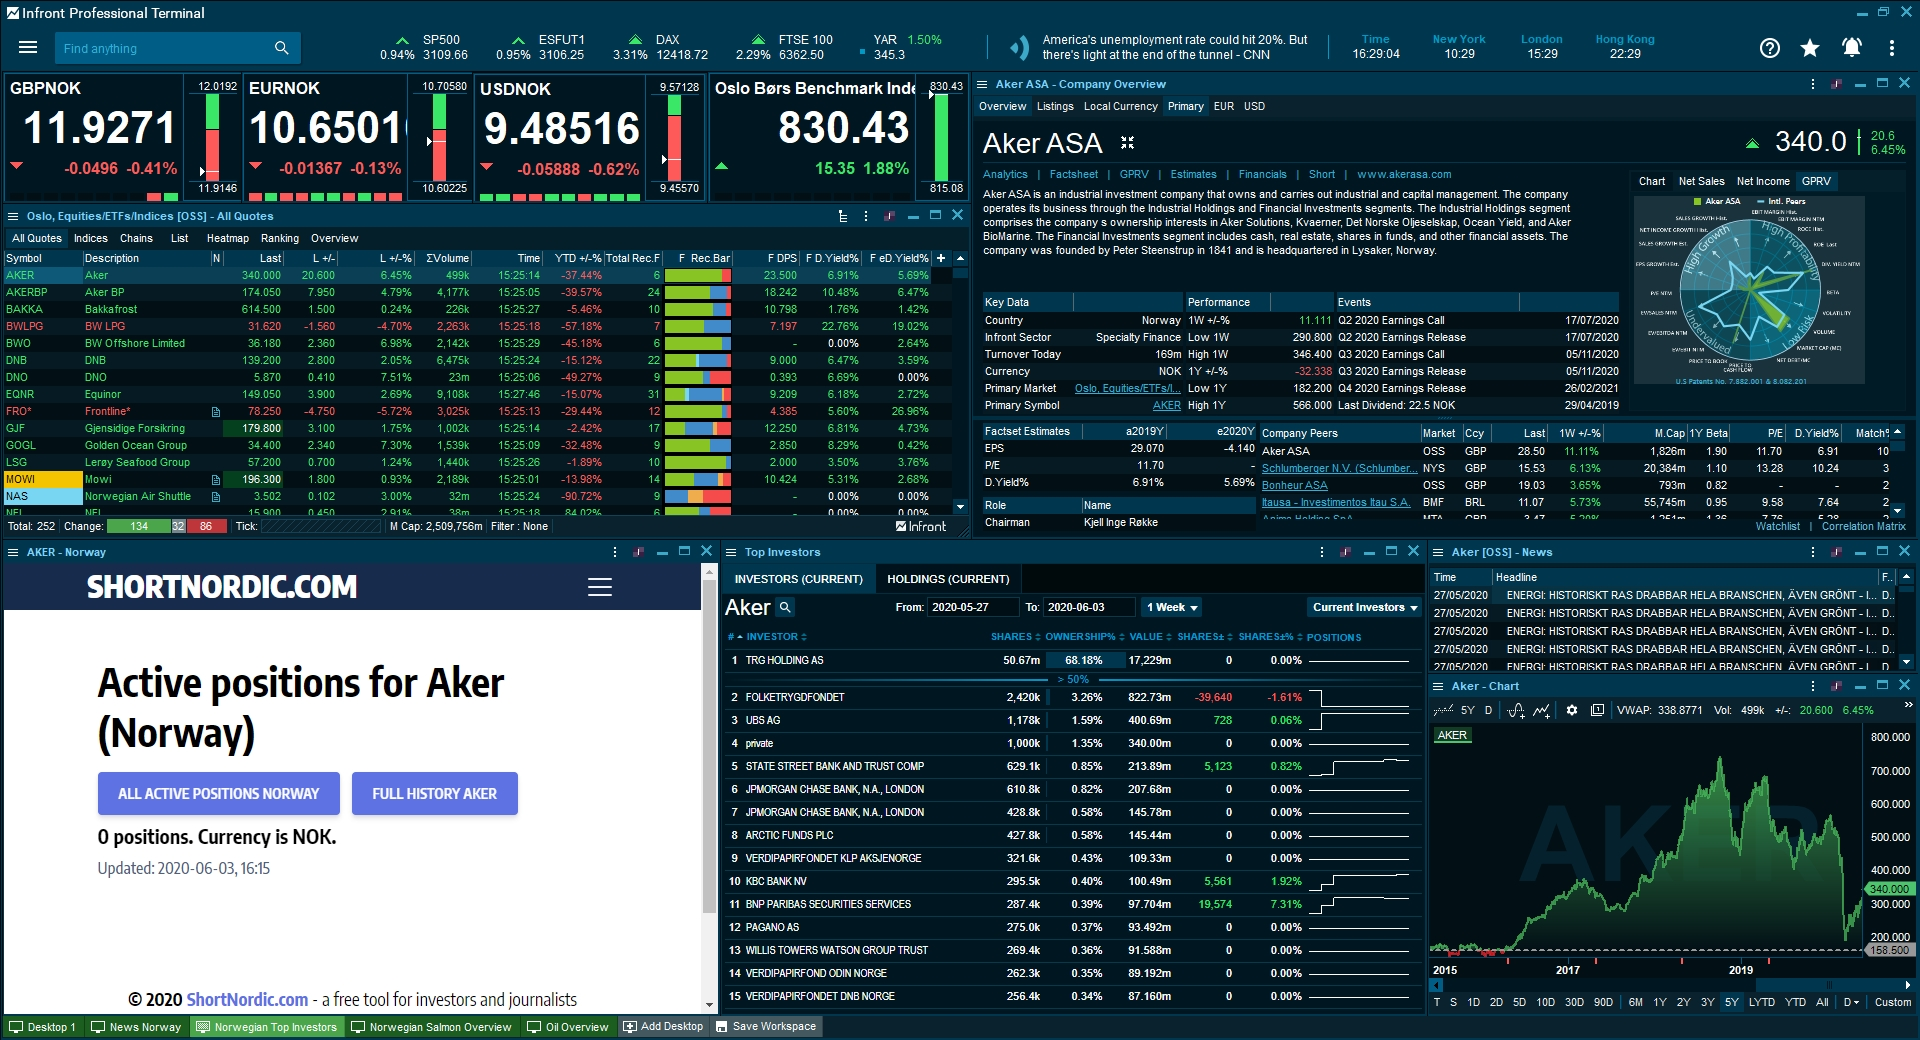 Desktop: Norwegian Top Investors